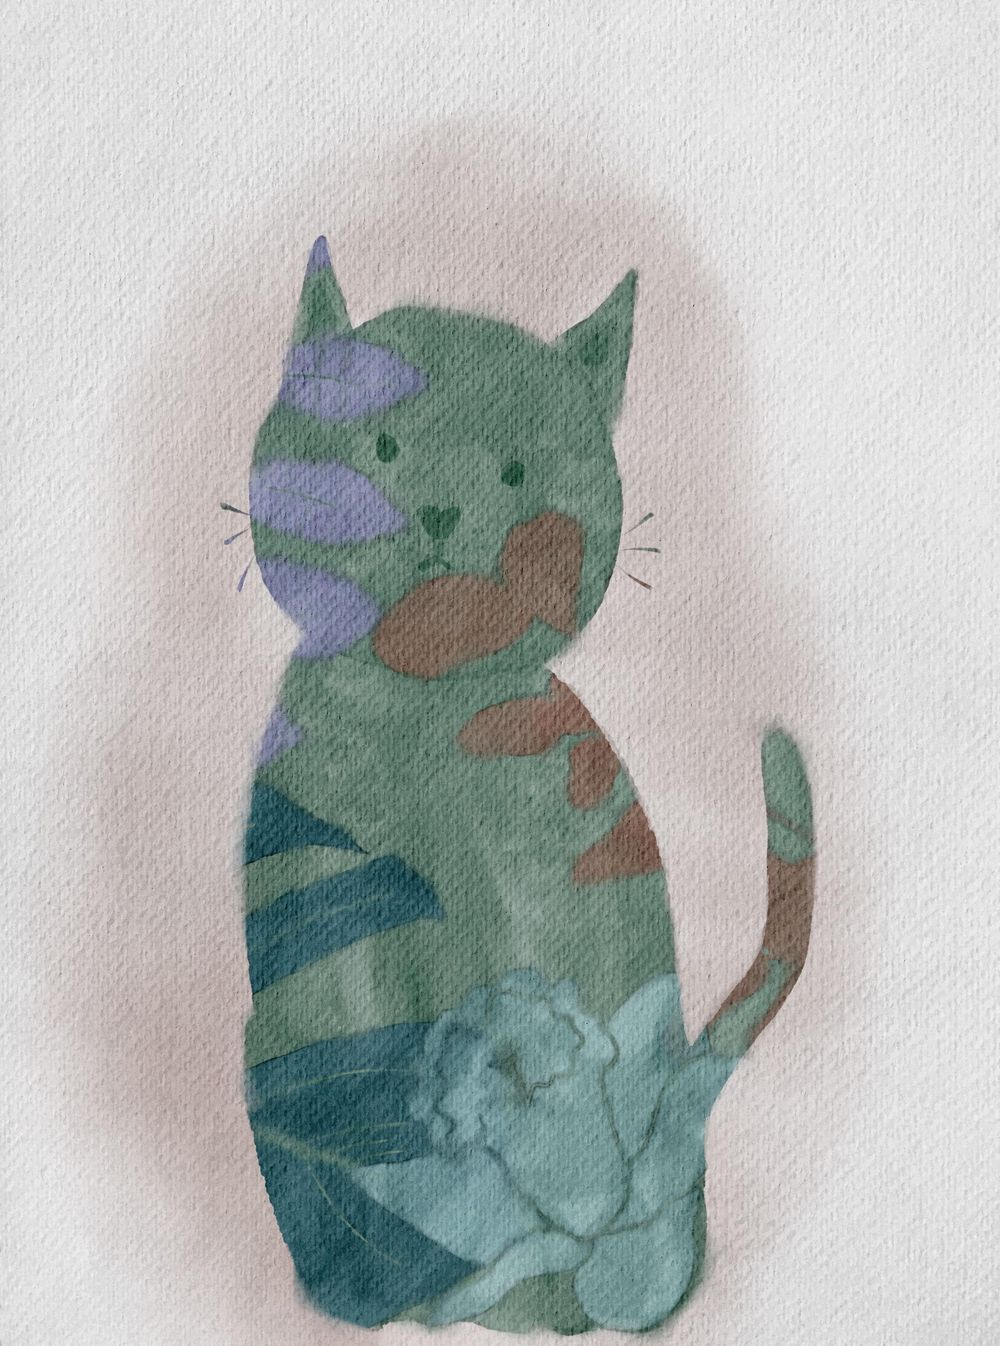 Meow mix - image 1 - student project